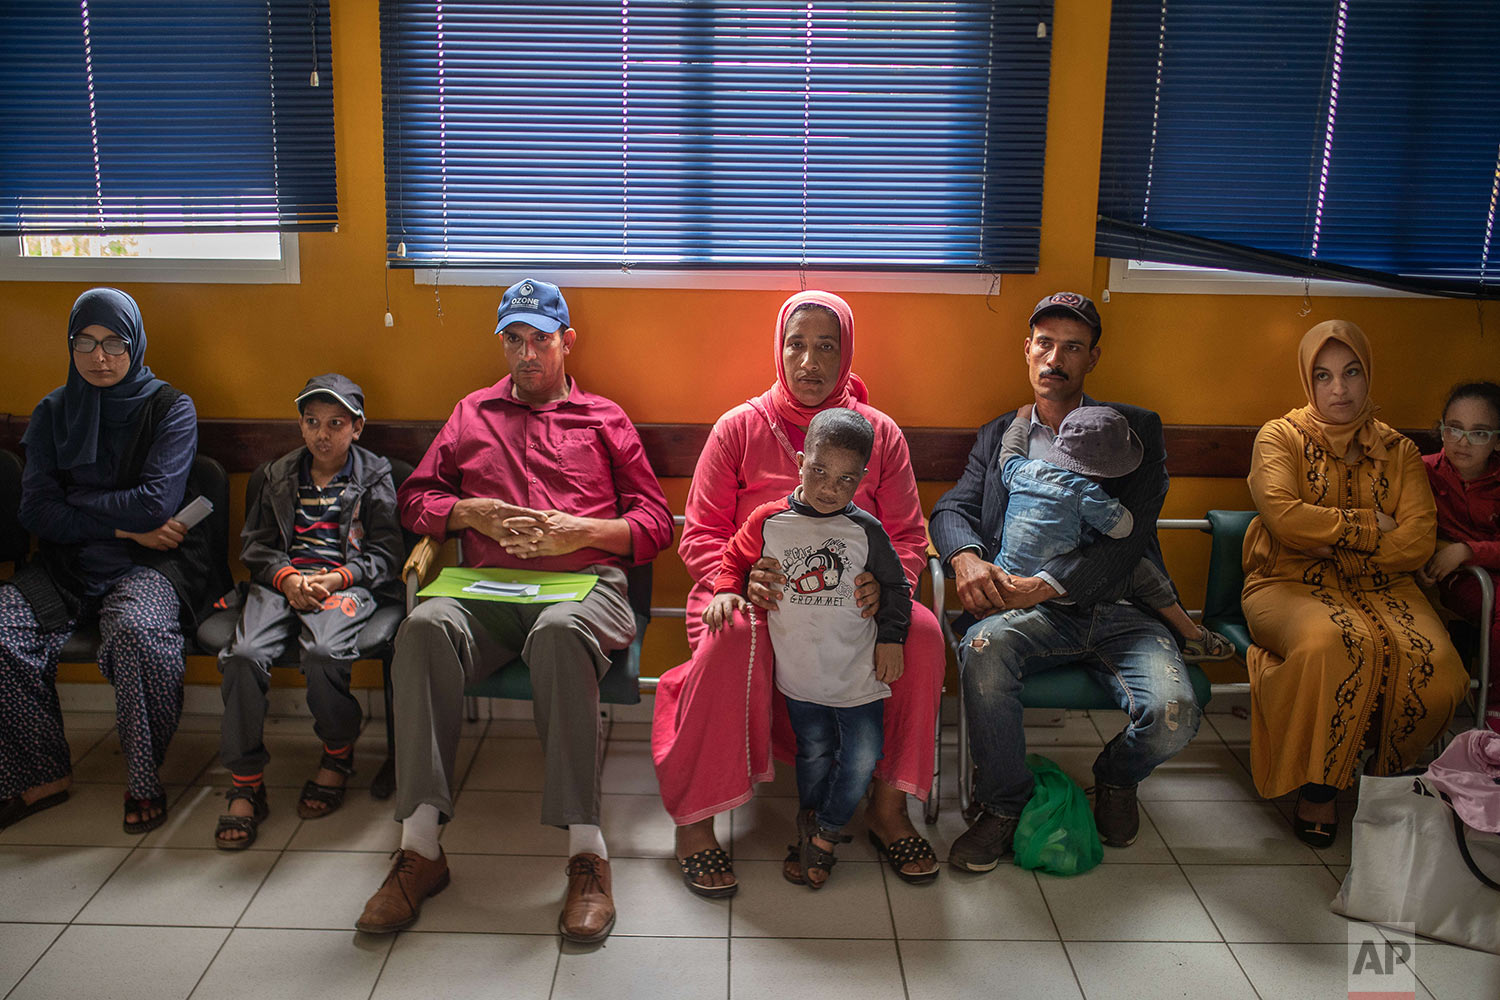 Families wait alongside their children affected by a rare disorder called xeroderma pigmentosum, or XP, inside a hospital in Casablanca, Morocco, July 24, 2019. (AP Photo/Mosa'ab Elshamy)